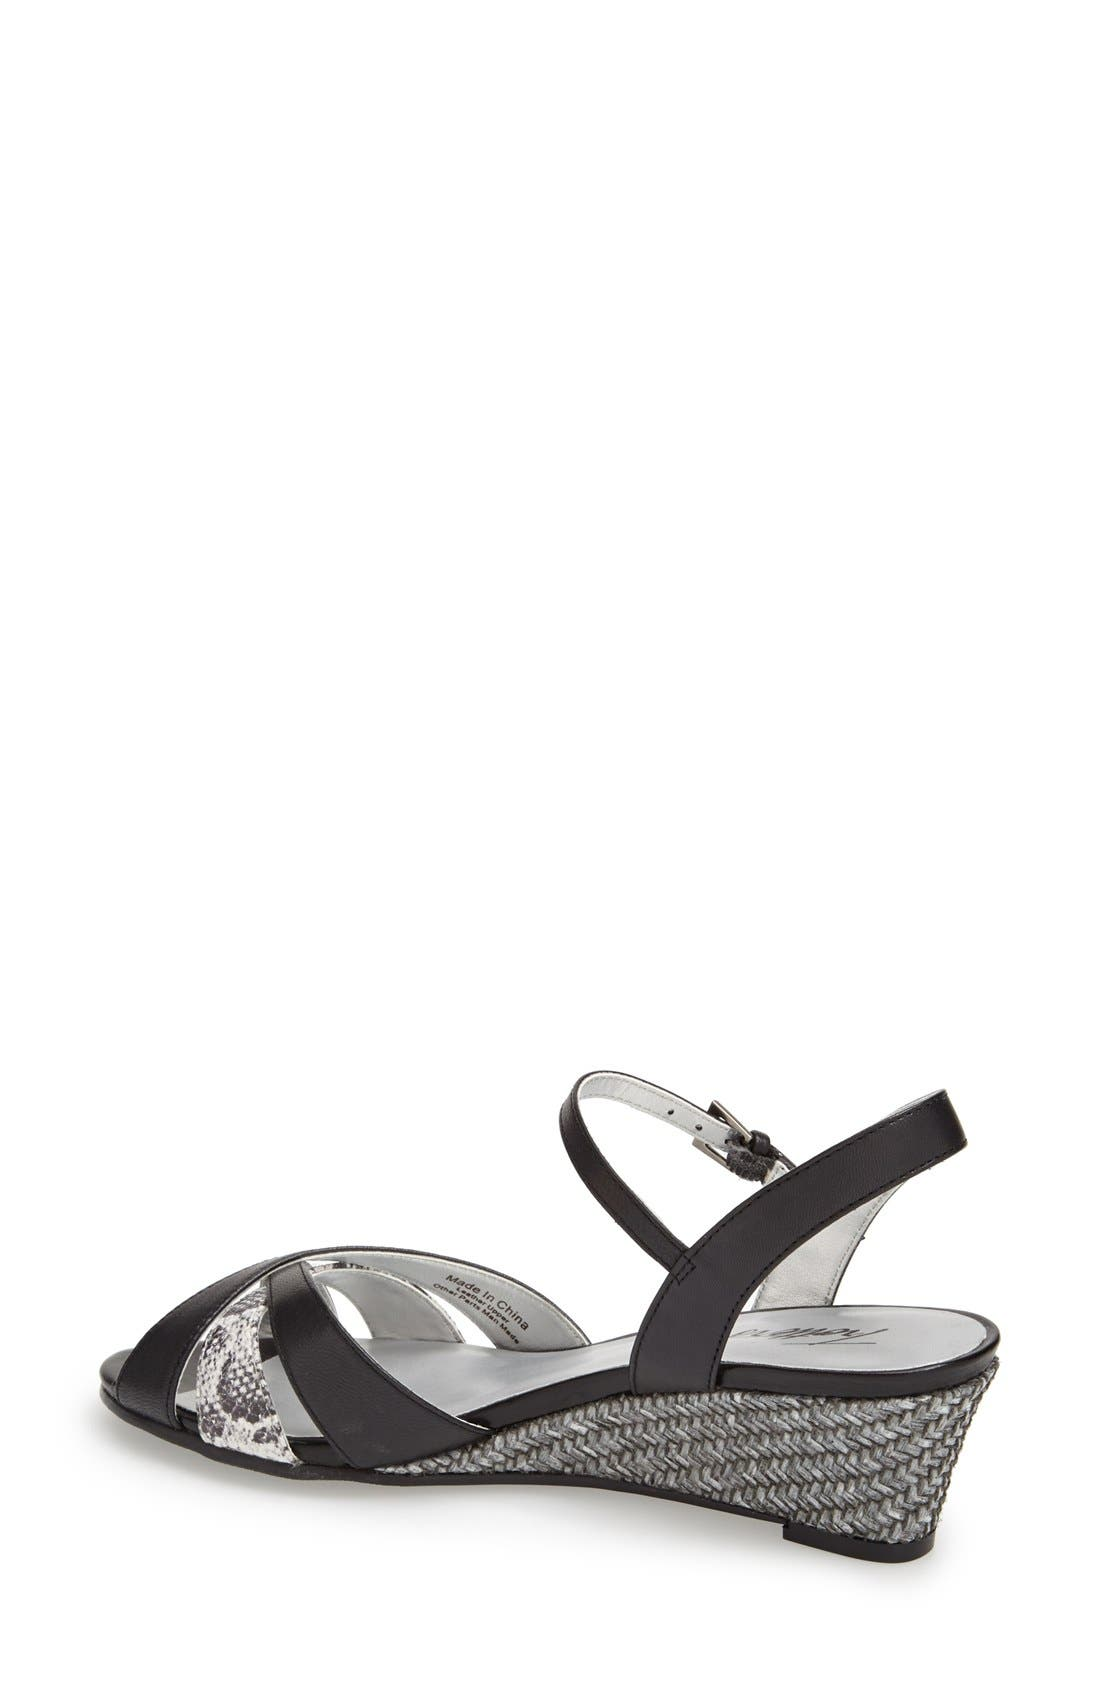 'Mickey' Wedge Sandal,                             Alternate thumbnail 34, color,